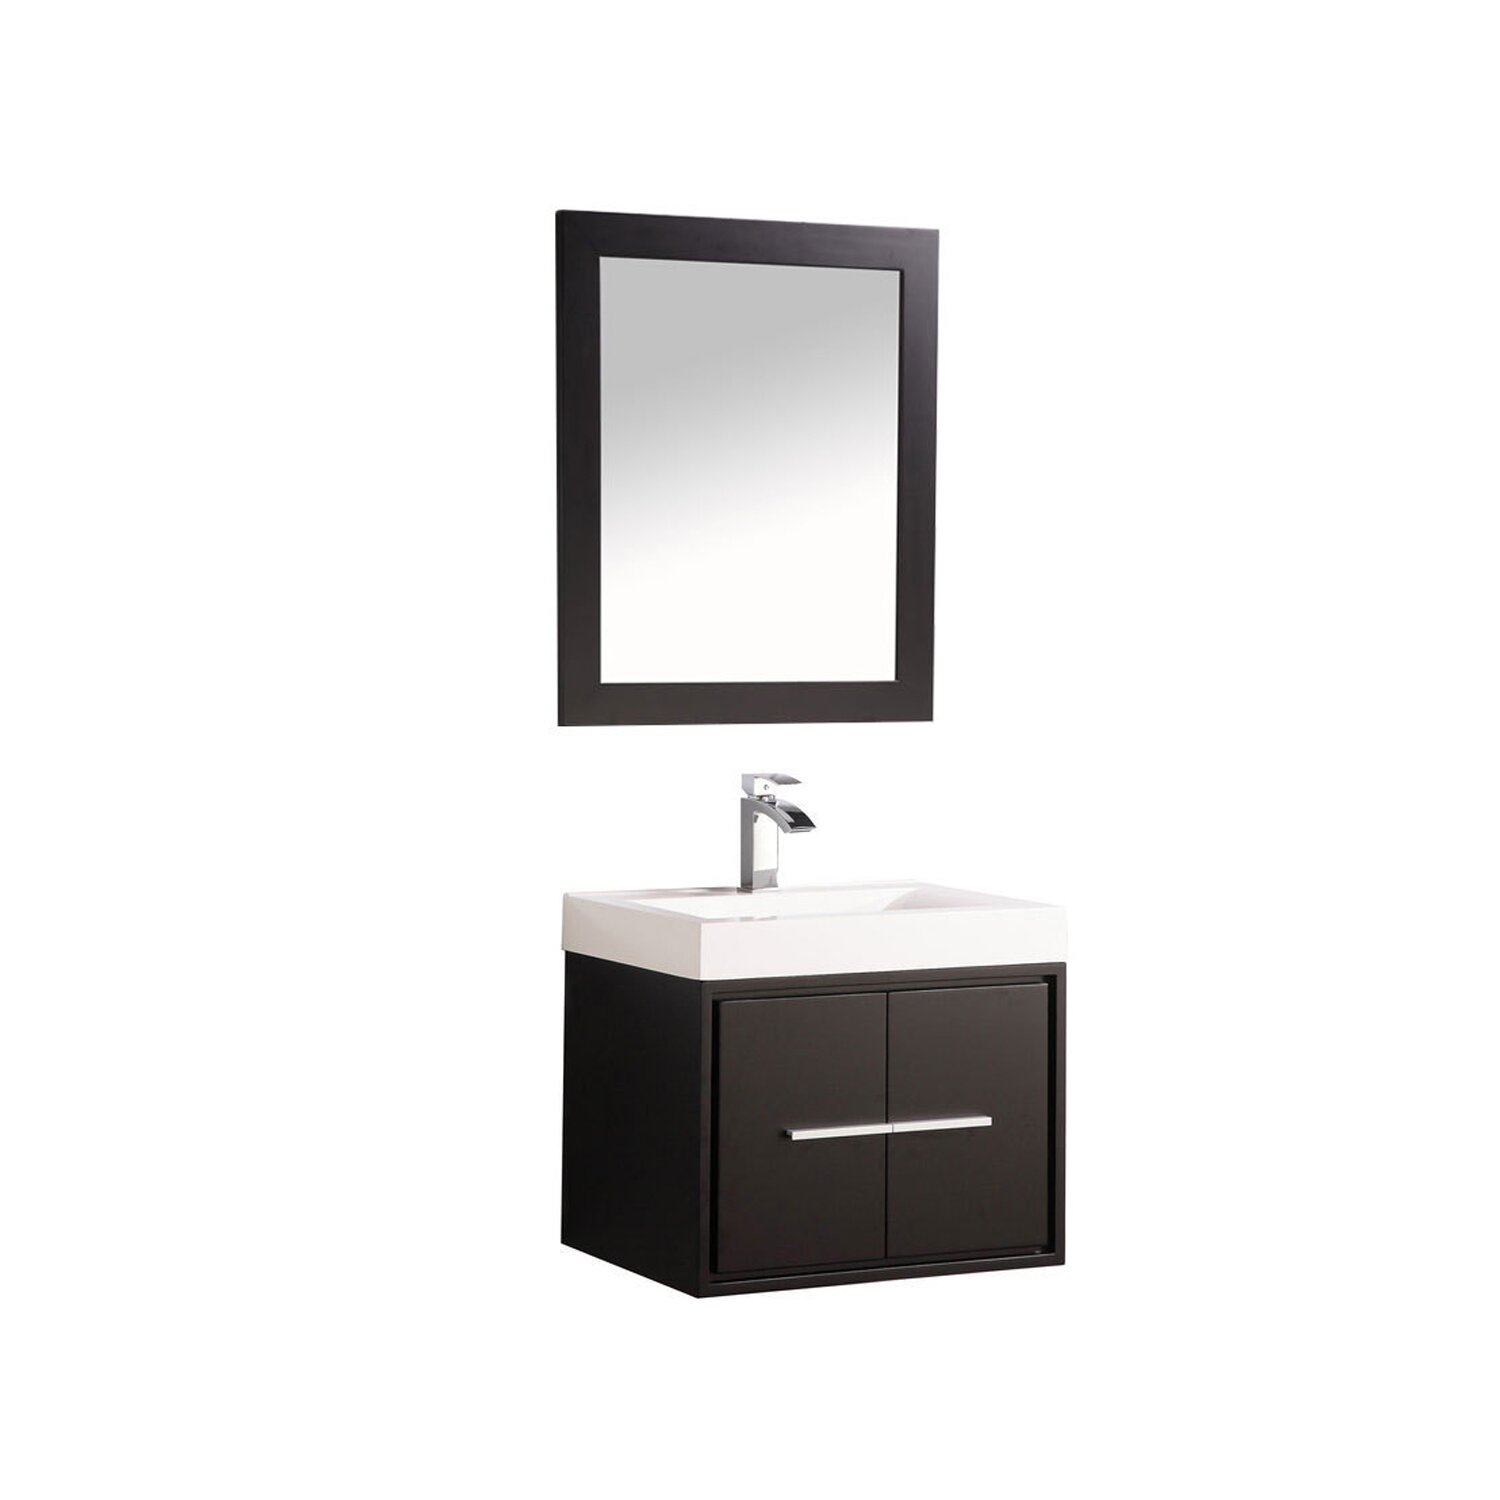 "MTDVanities Cypress 24"" Single Floating Bathroom Vanity Set with Mirror"